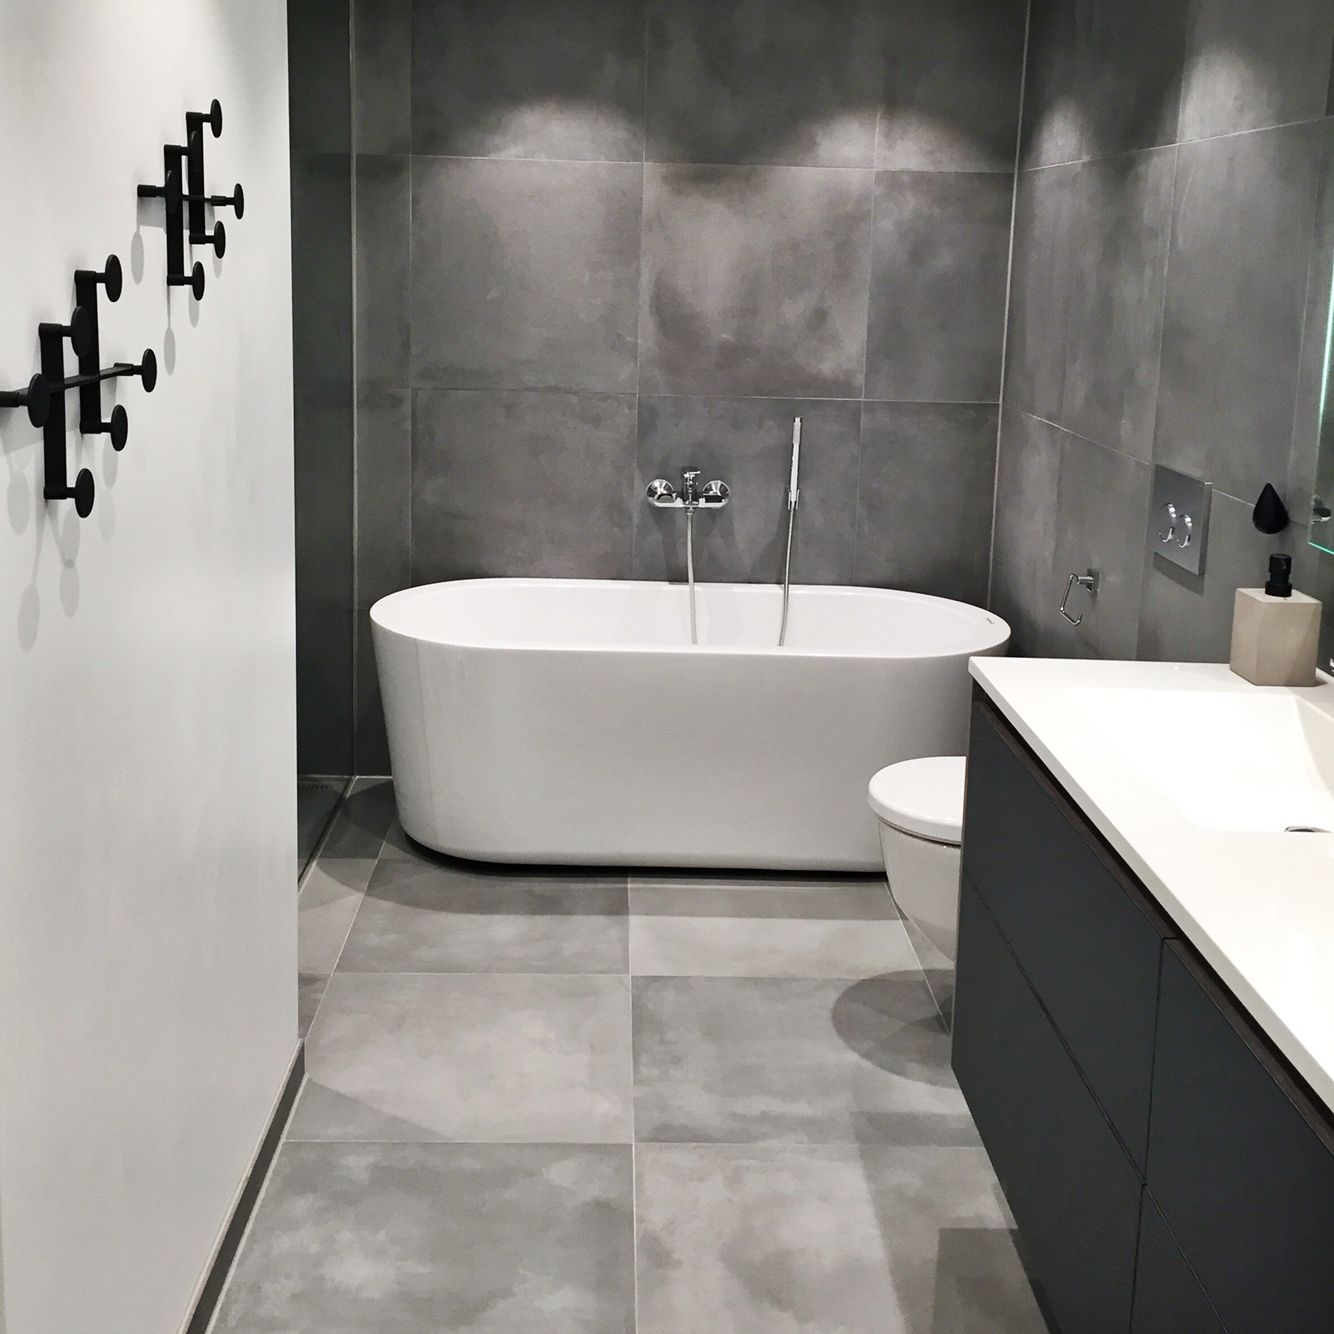 grey bathroom tile - Bathroom grey cement tiles 60x60 Badezimmer, Fliesen bathroom tile